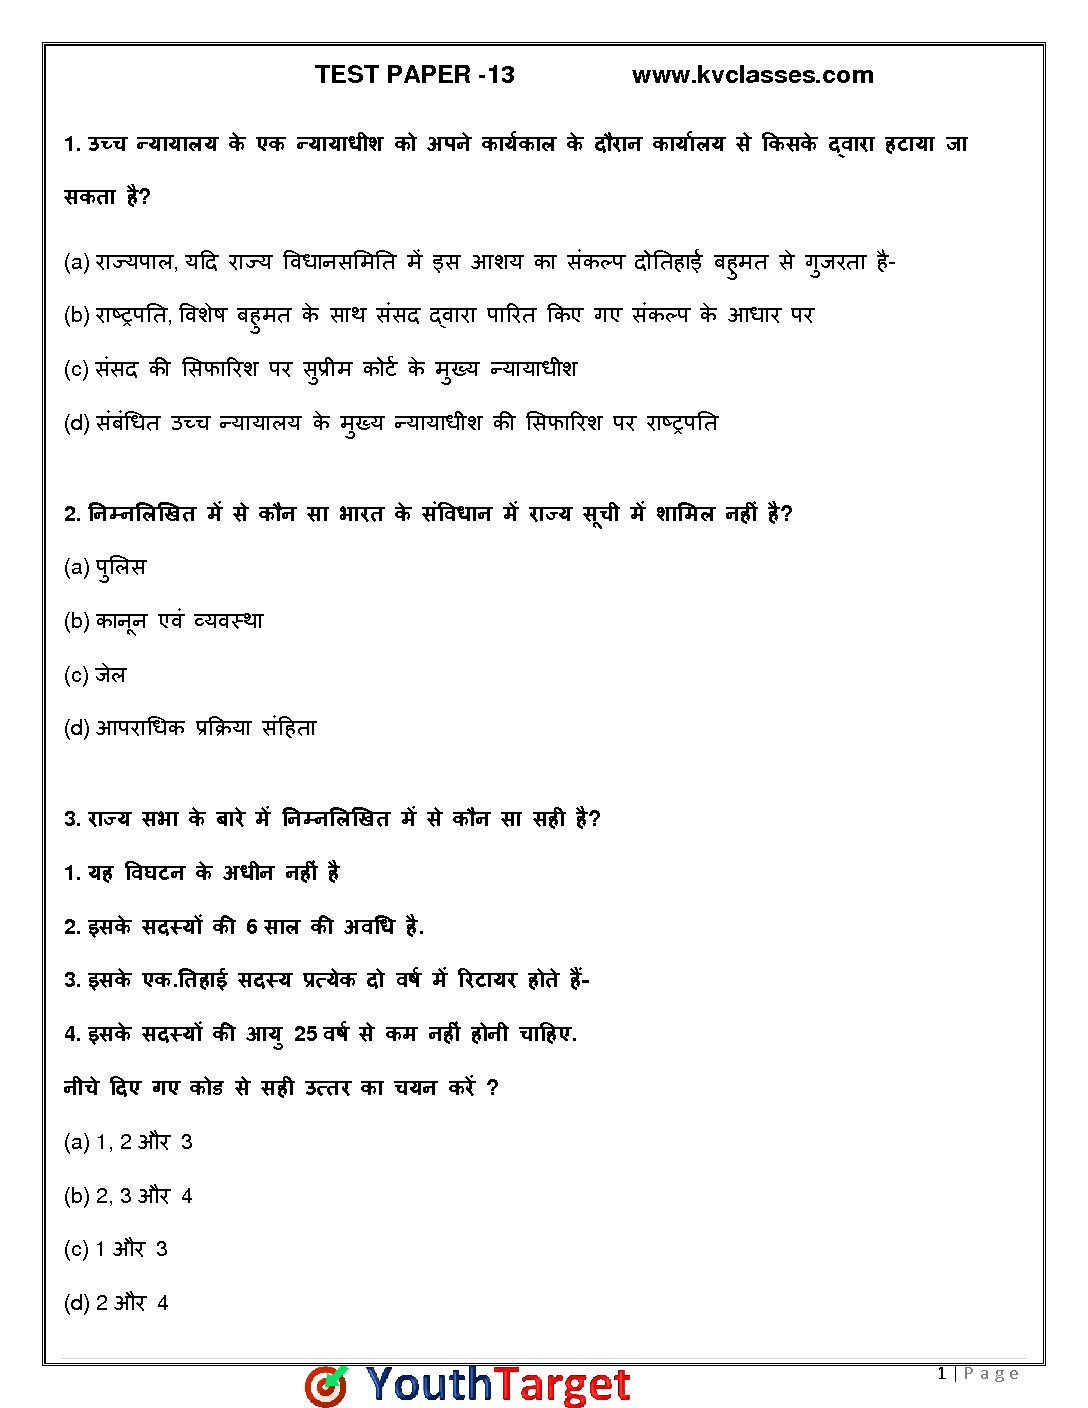 BIHAR SI (बिहार दरोगा ) Exam 2017 Mock Test Paper-13 PDF Download